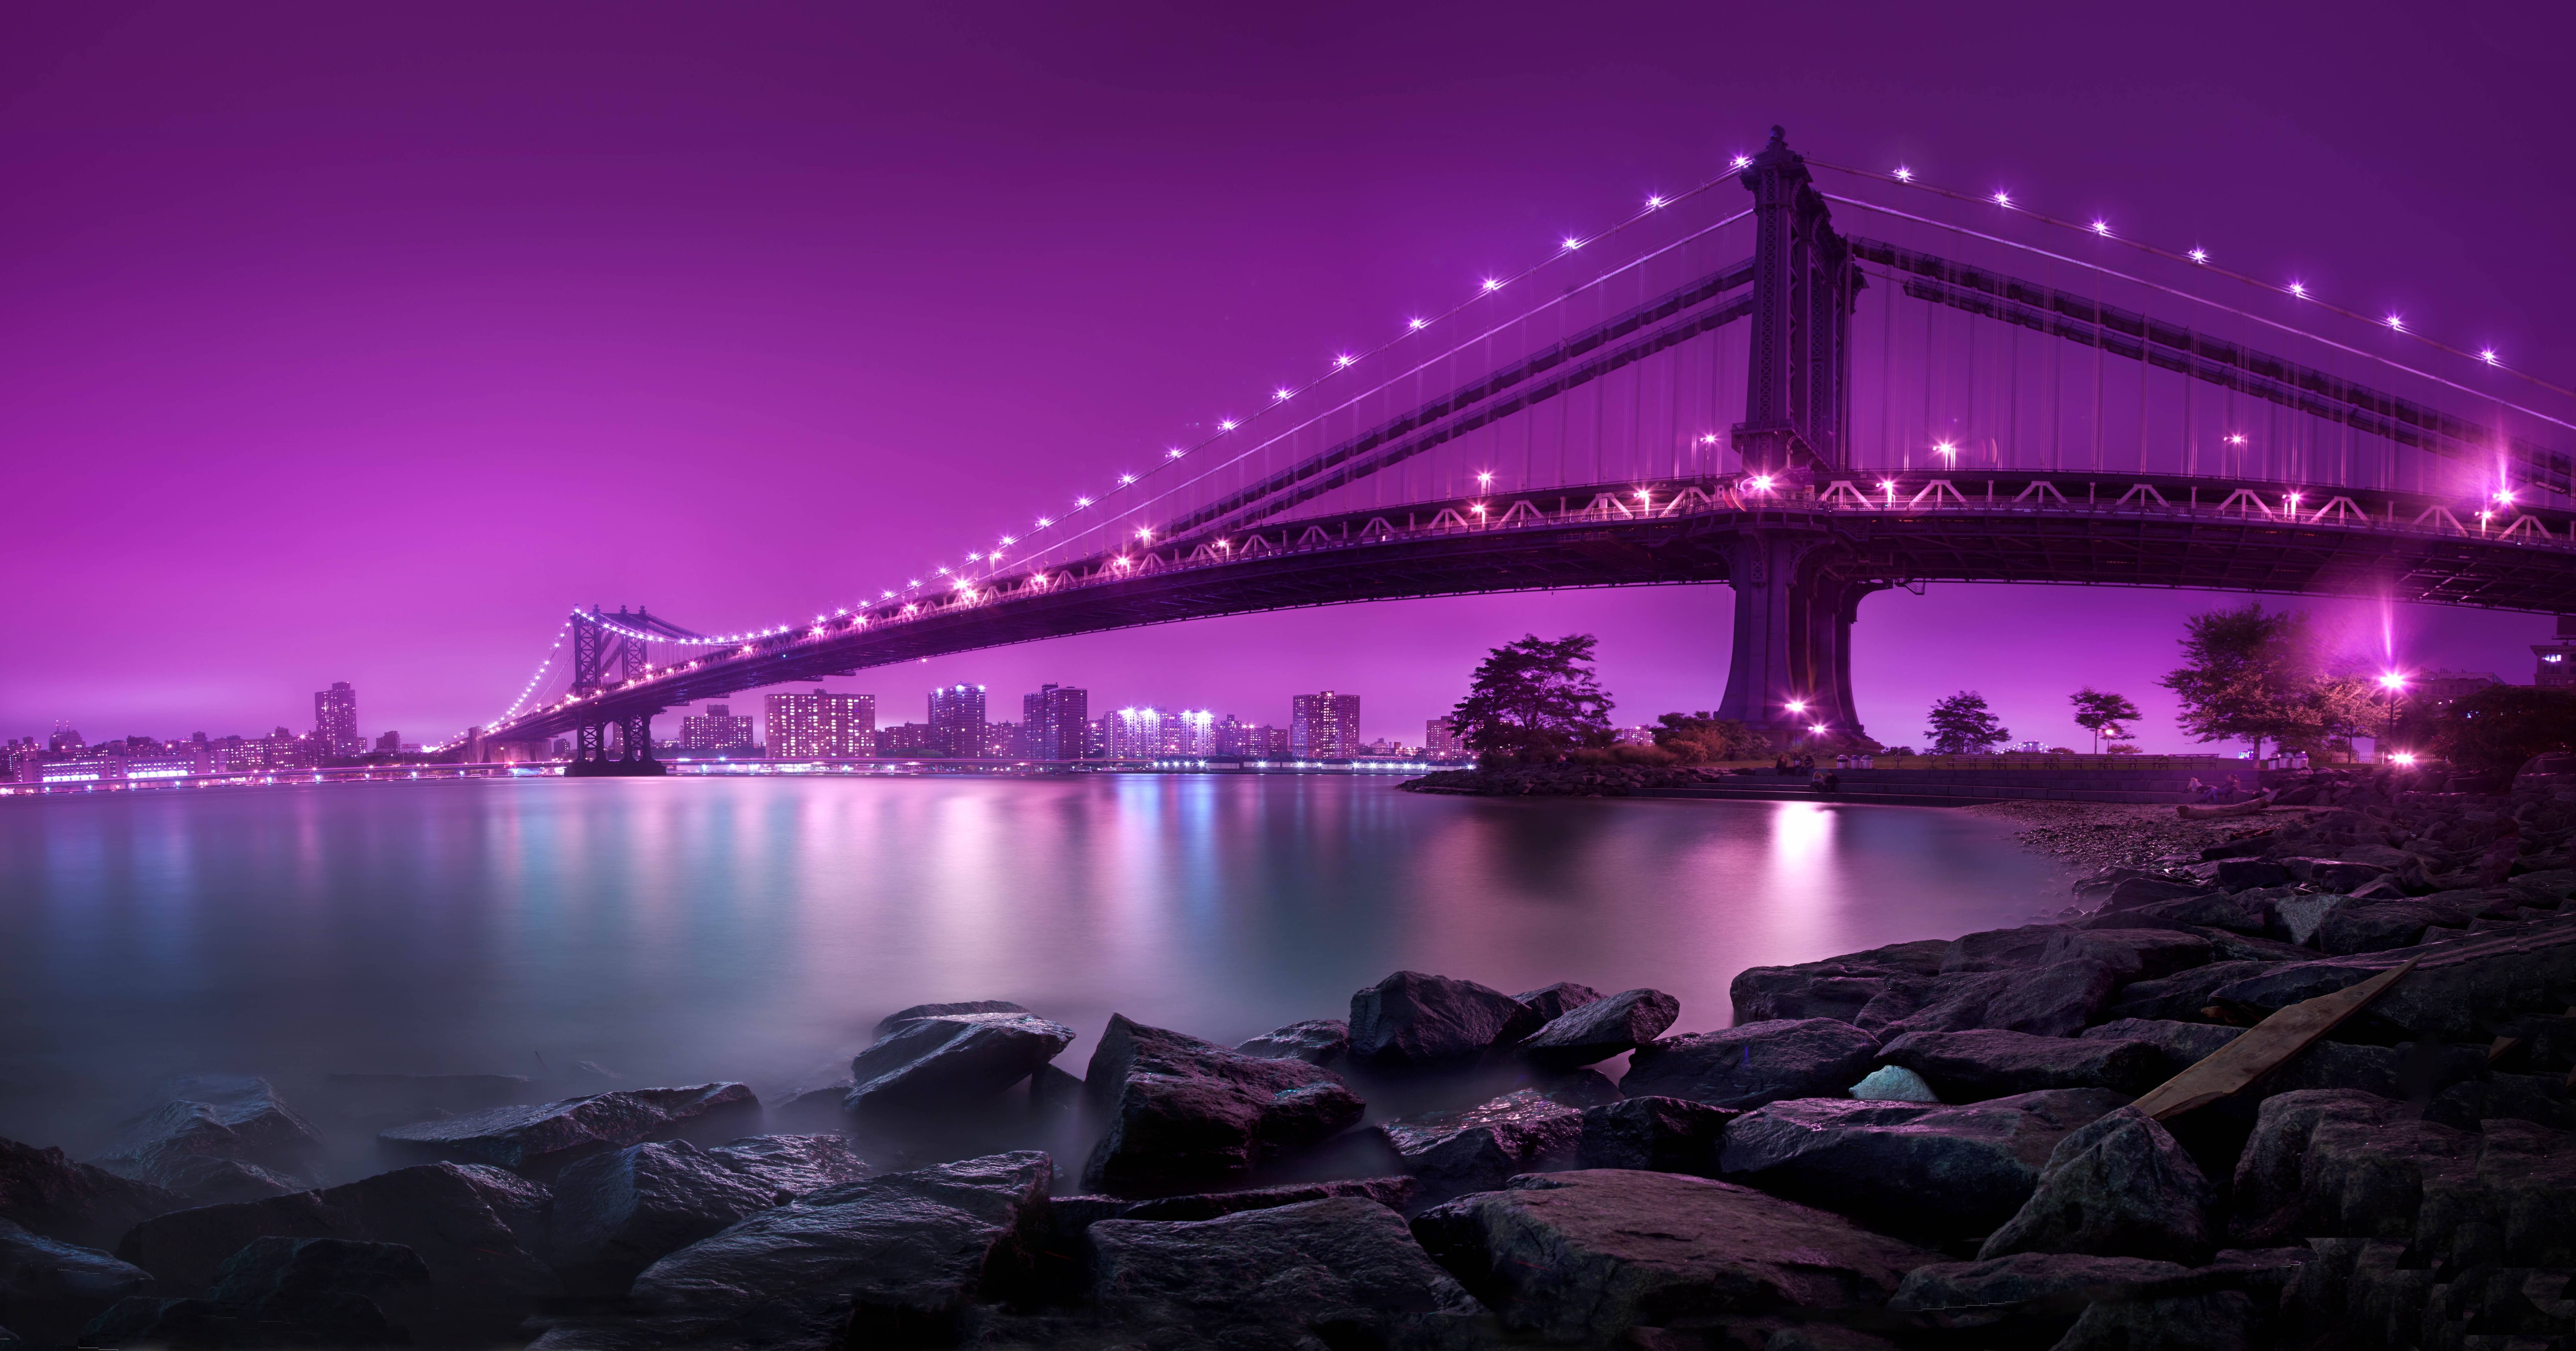 awesome bridge wallpaper 11658x6112 489485 wallpaperup